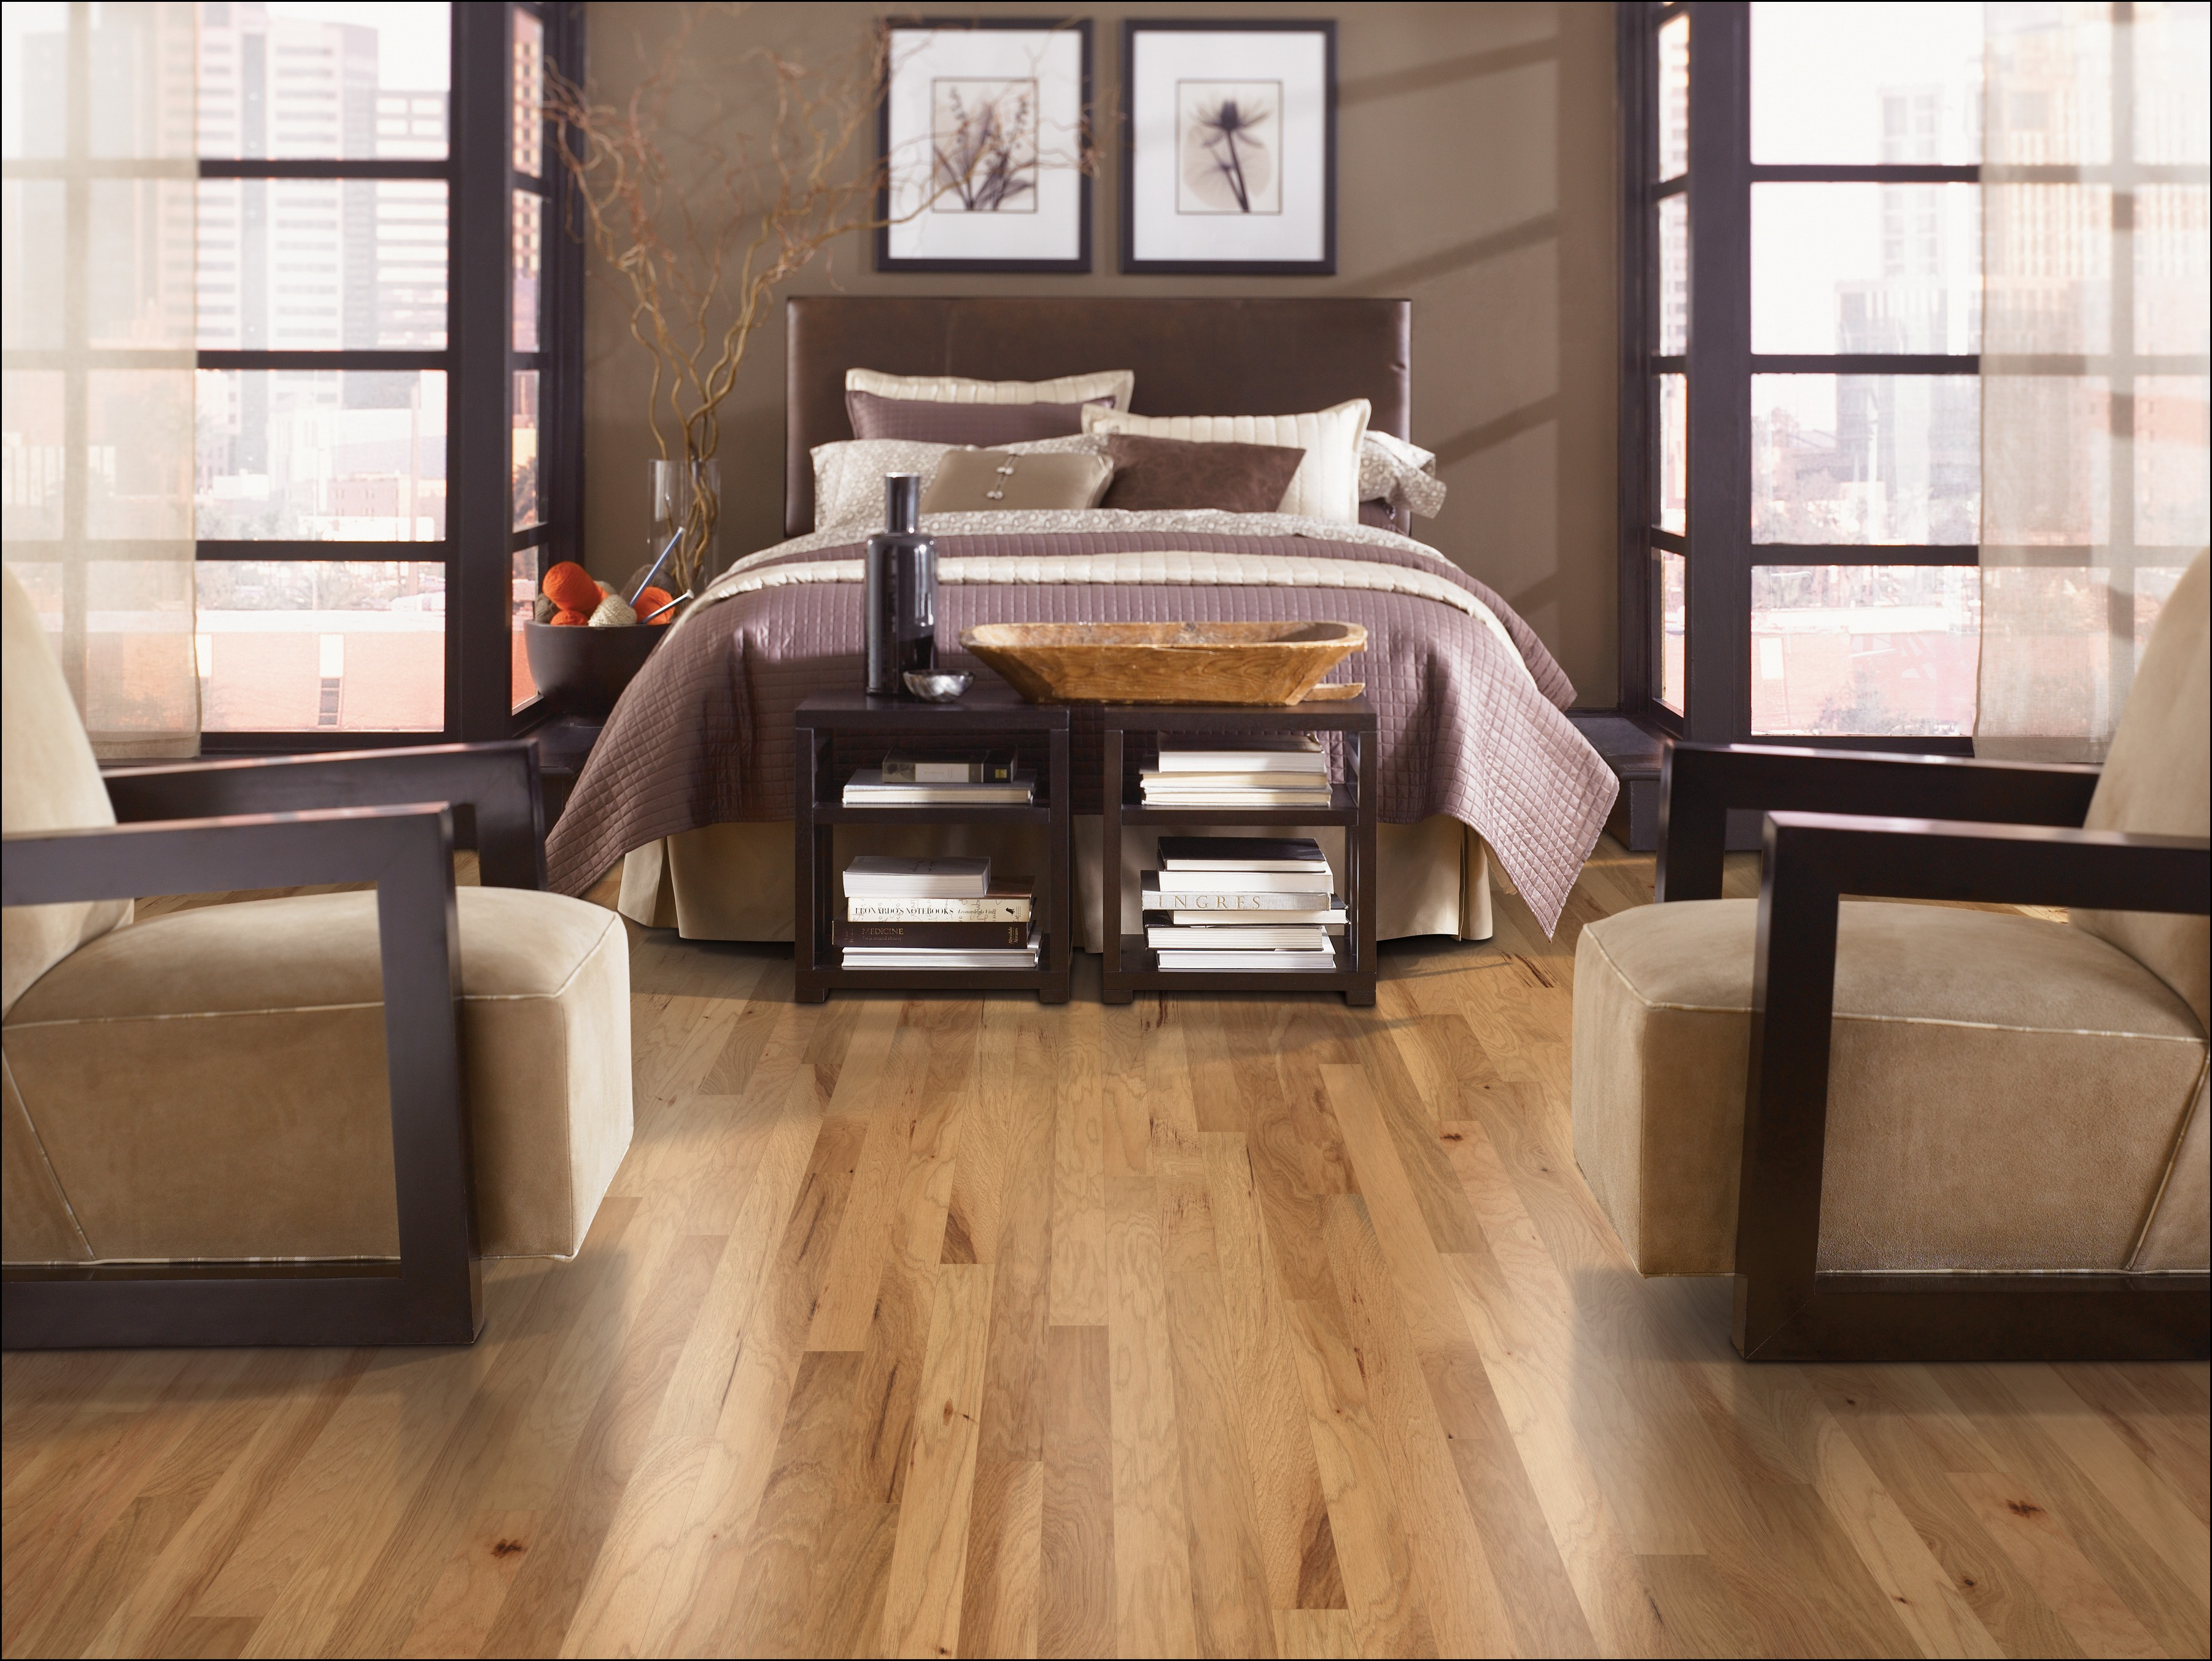 Since Installation The Top Layer Of Dark Wooden Flooring Has Led Rubbed Away And Chipped Regularly In A Number Totally Diffe Rooms Our